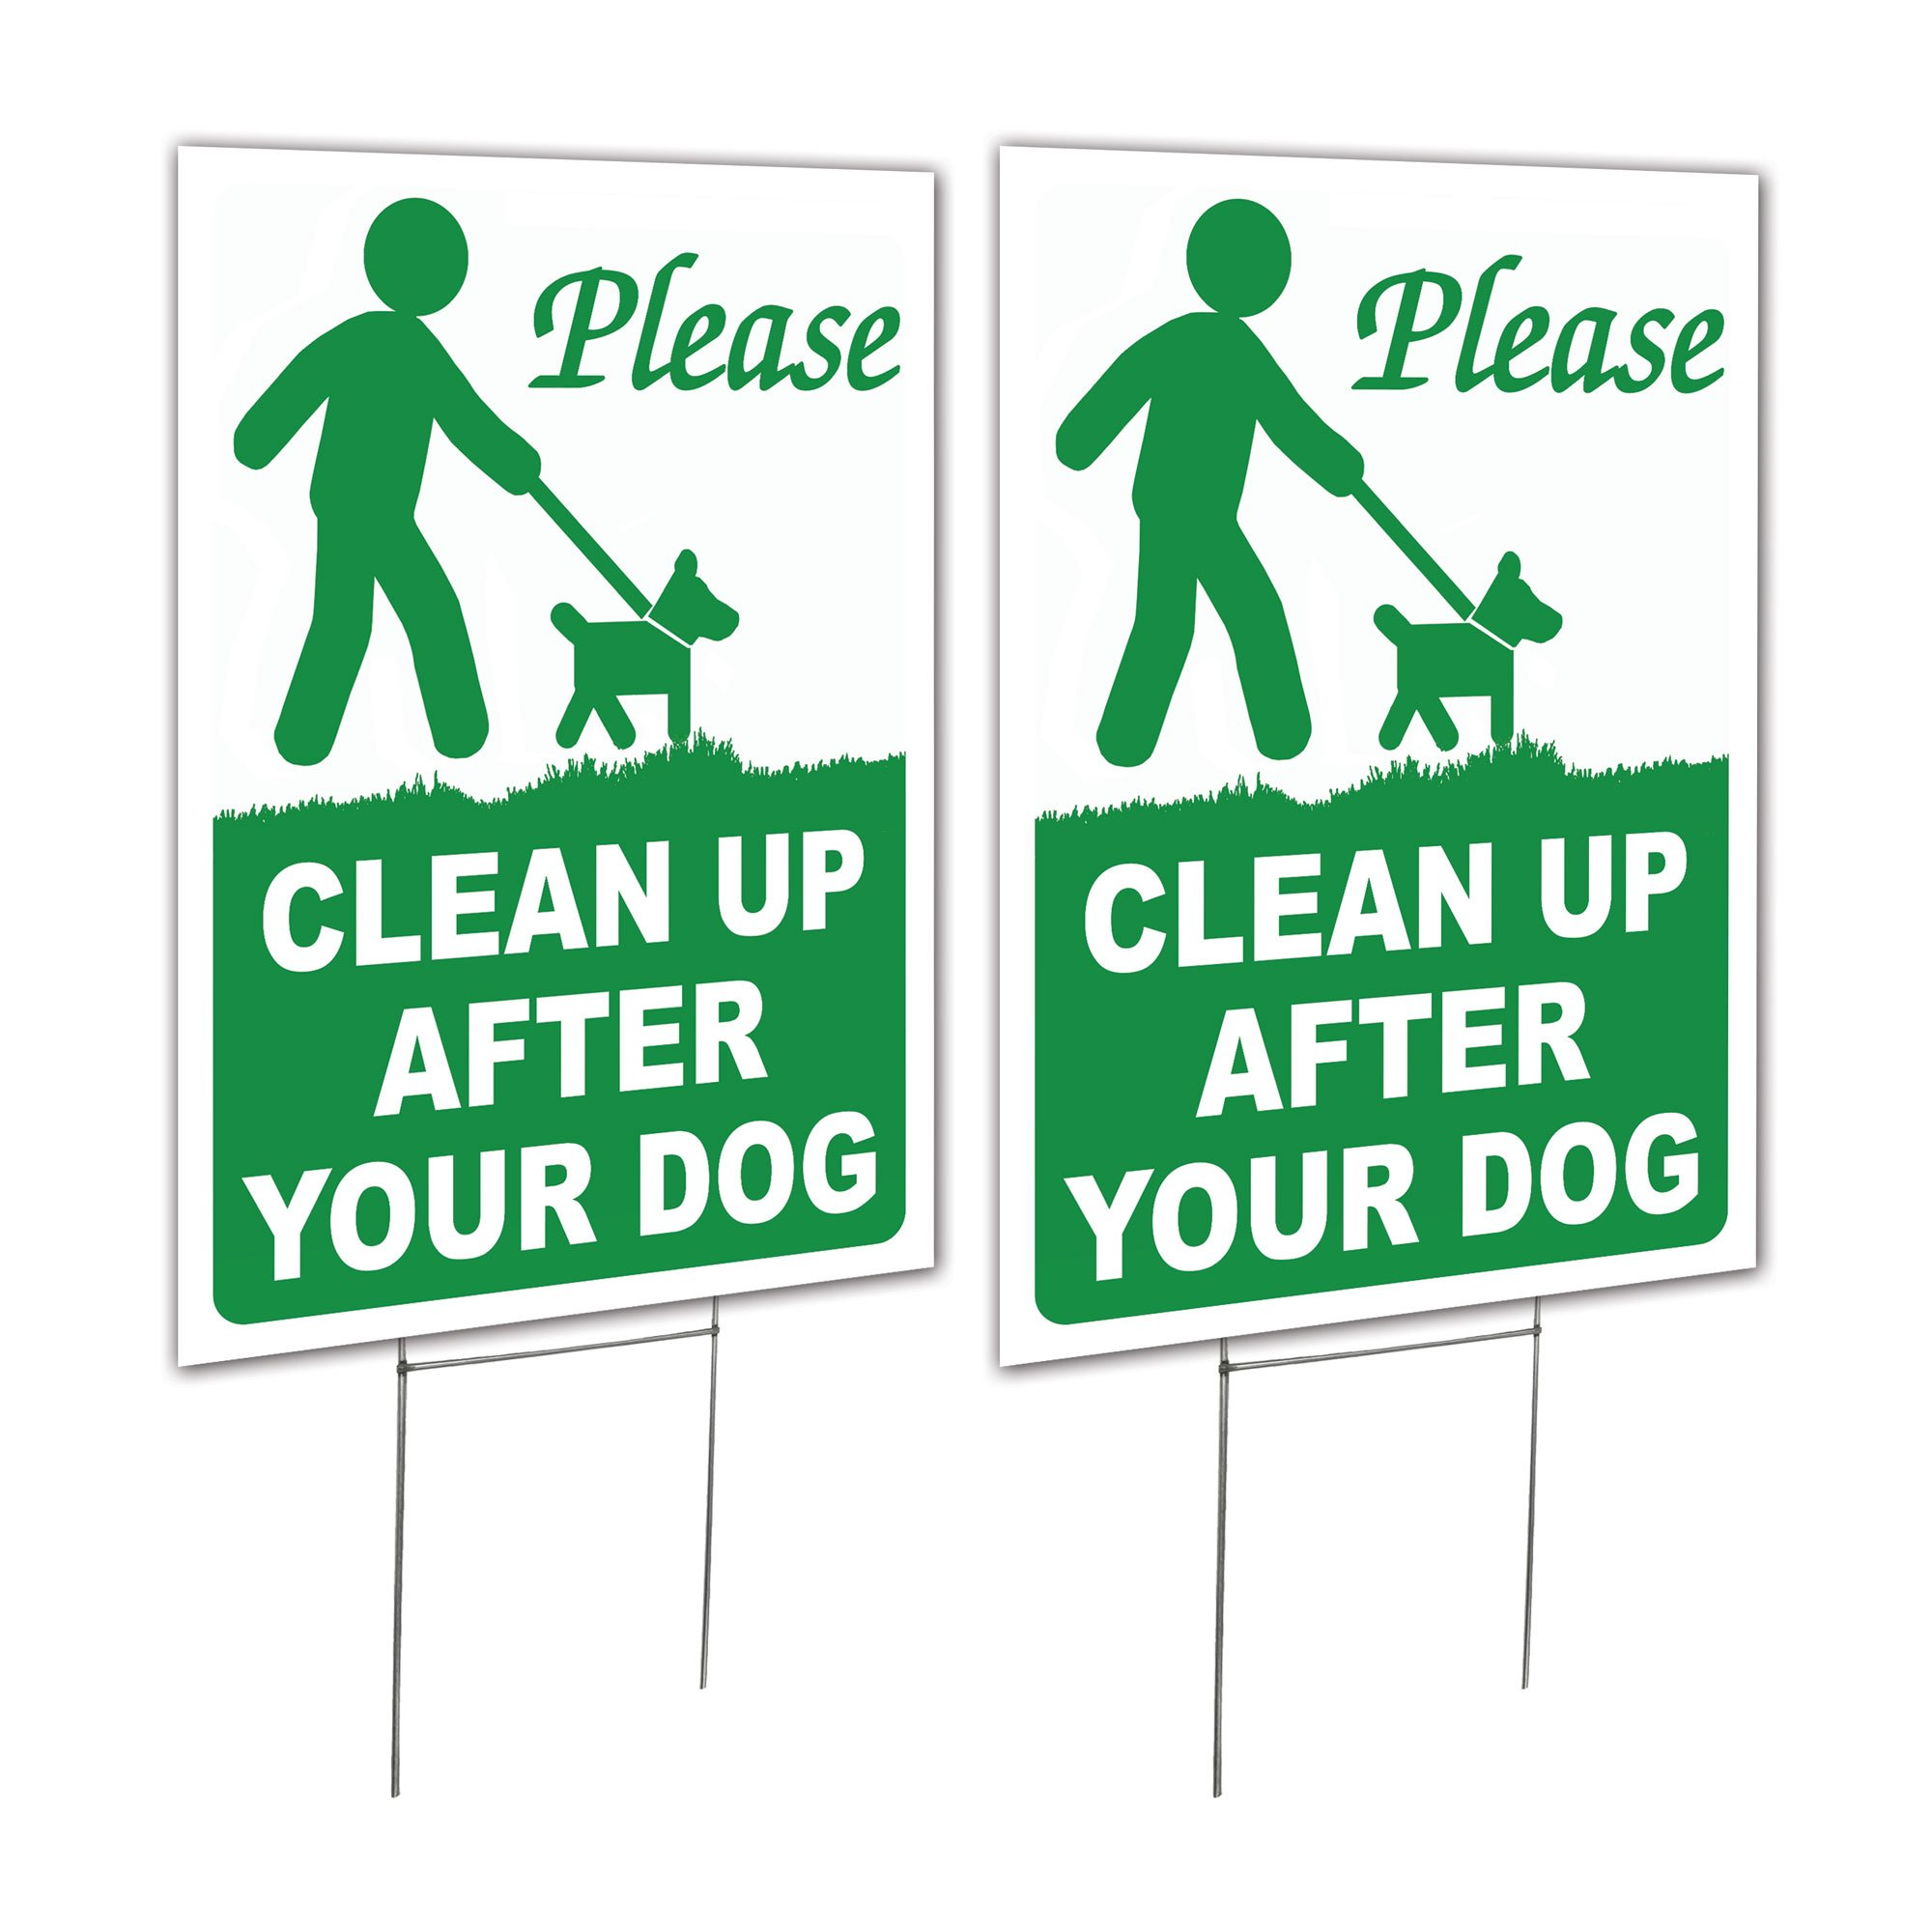 2 Pack 9x12 Clean Up After Your Dog Lawn Signs with H-stakes (2)